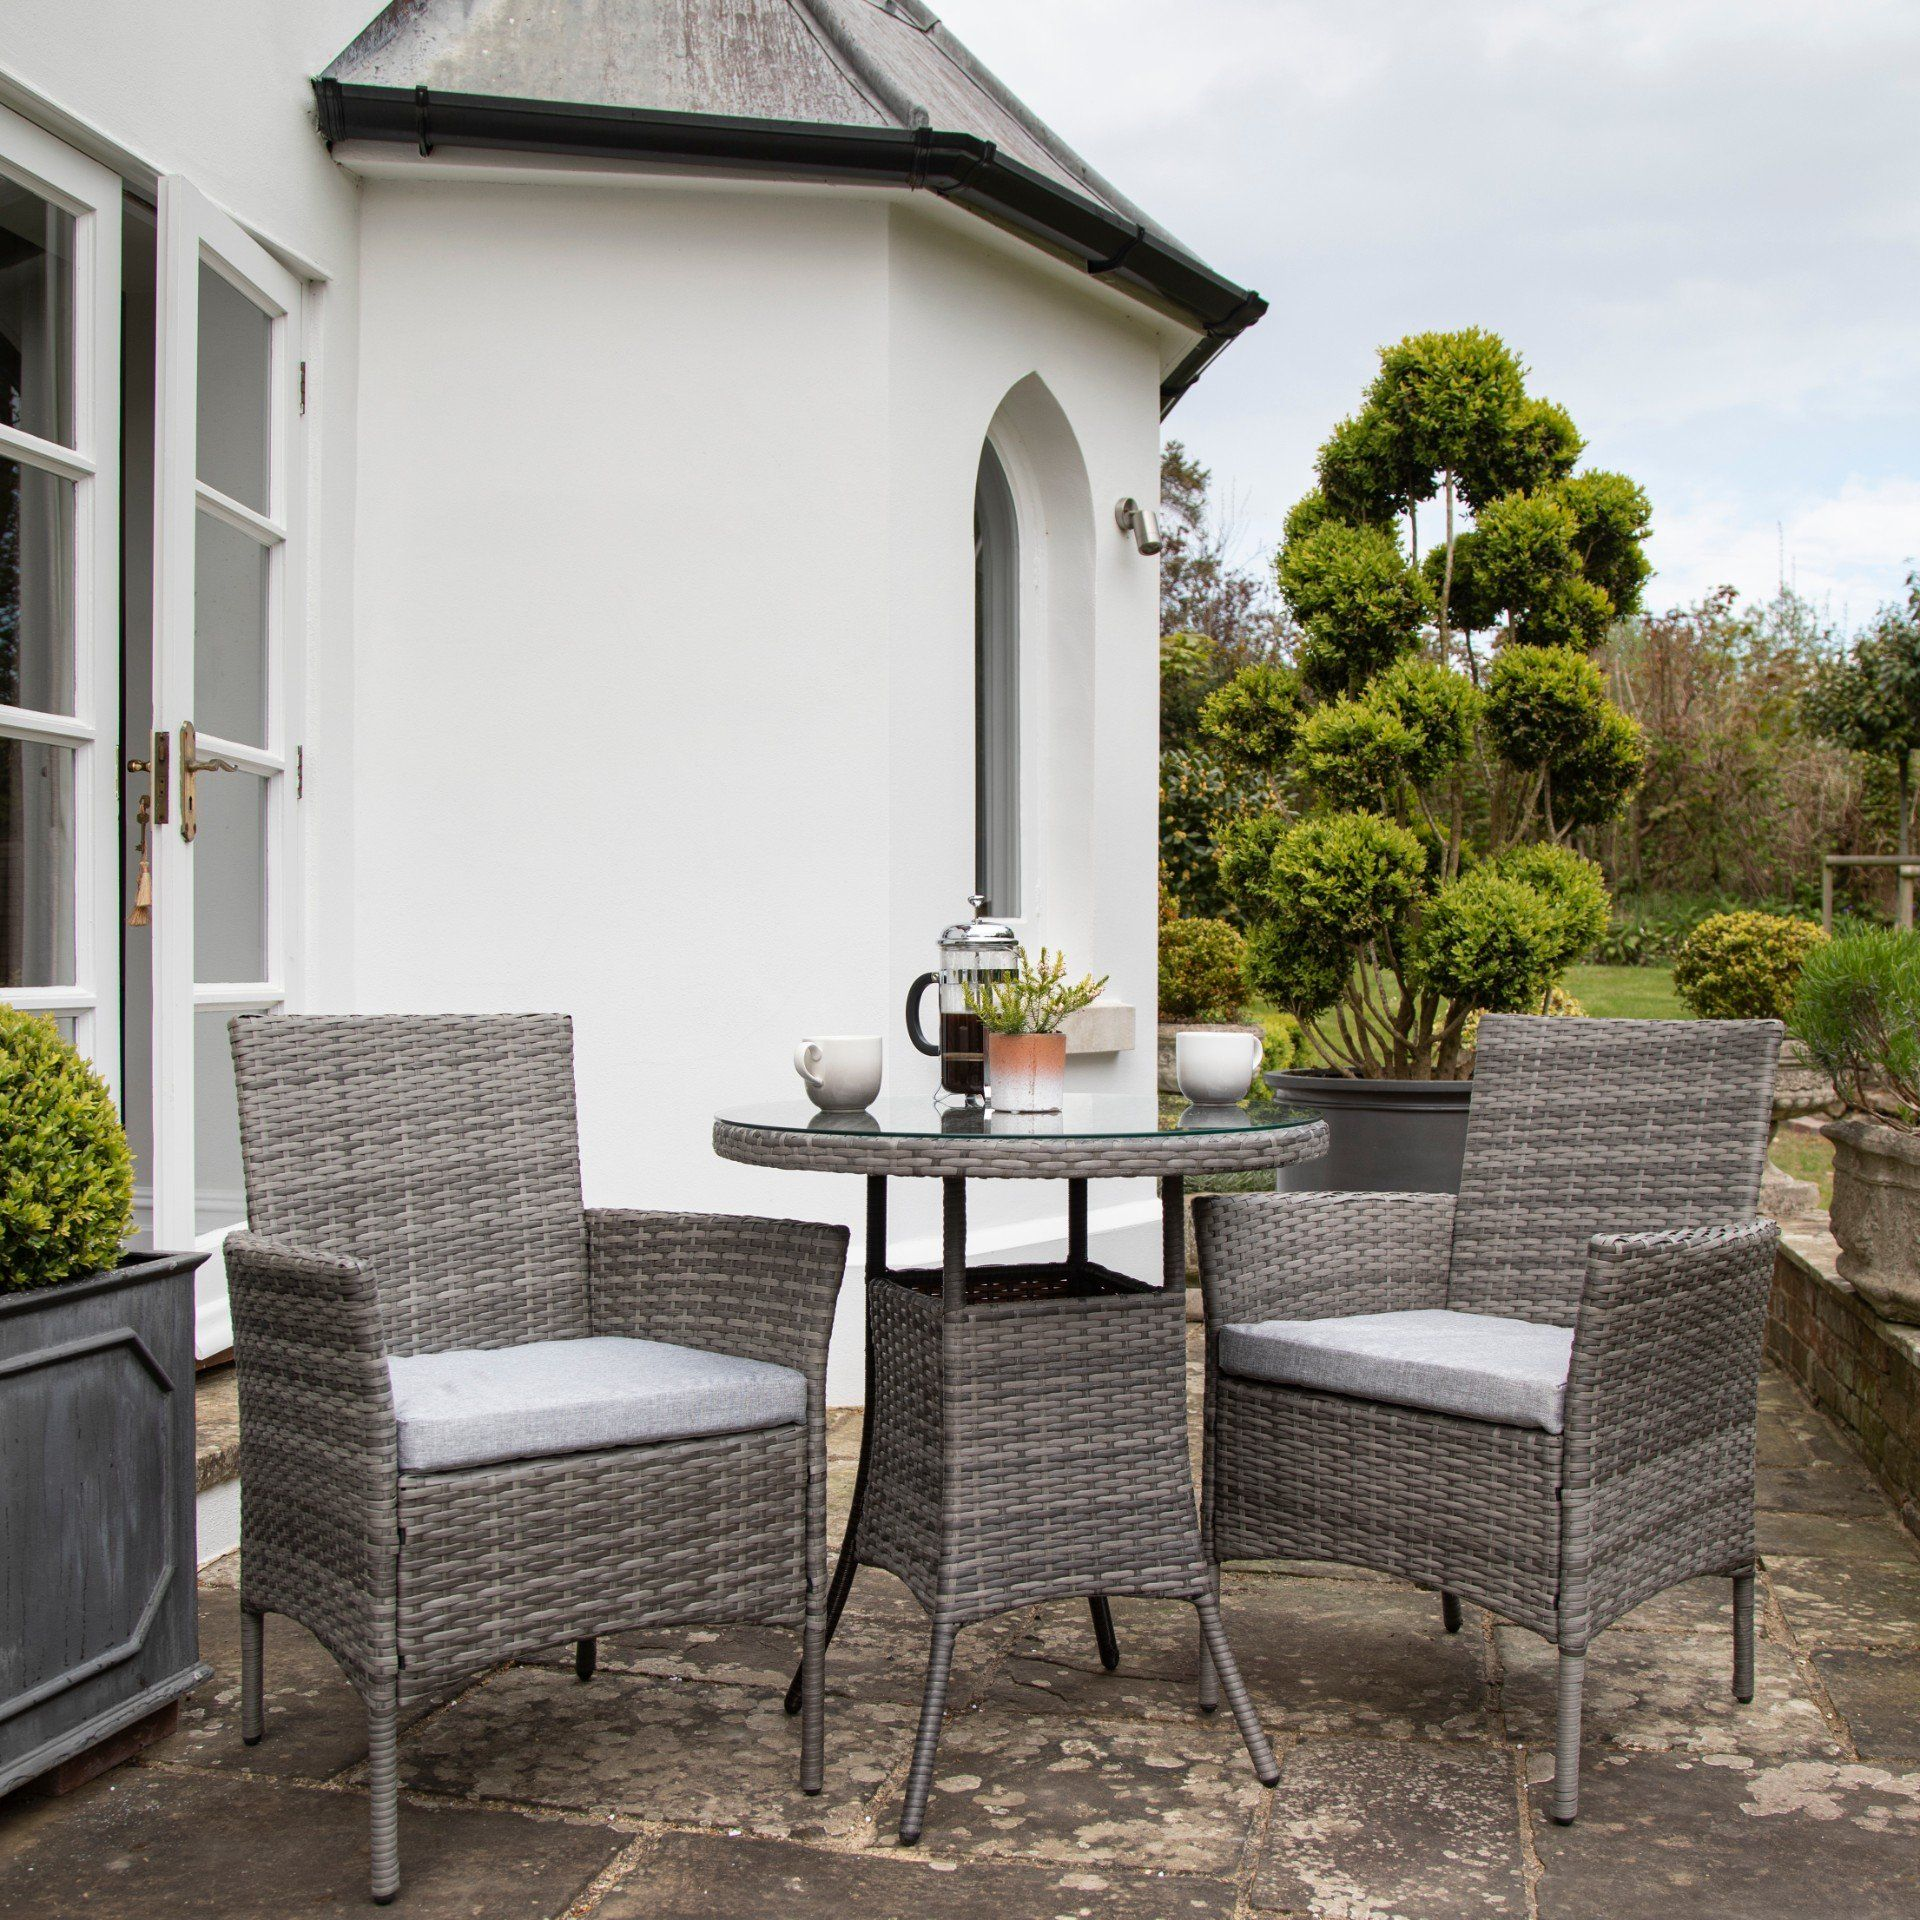 2 Seater Rattan Bistro Dining Set - Grey - Laura James